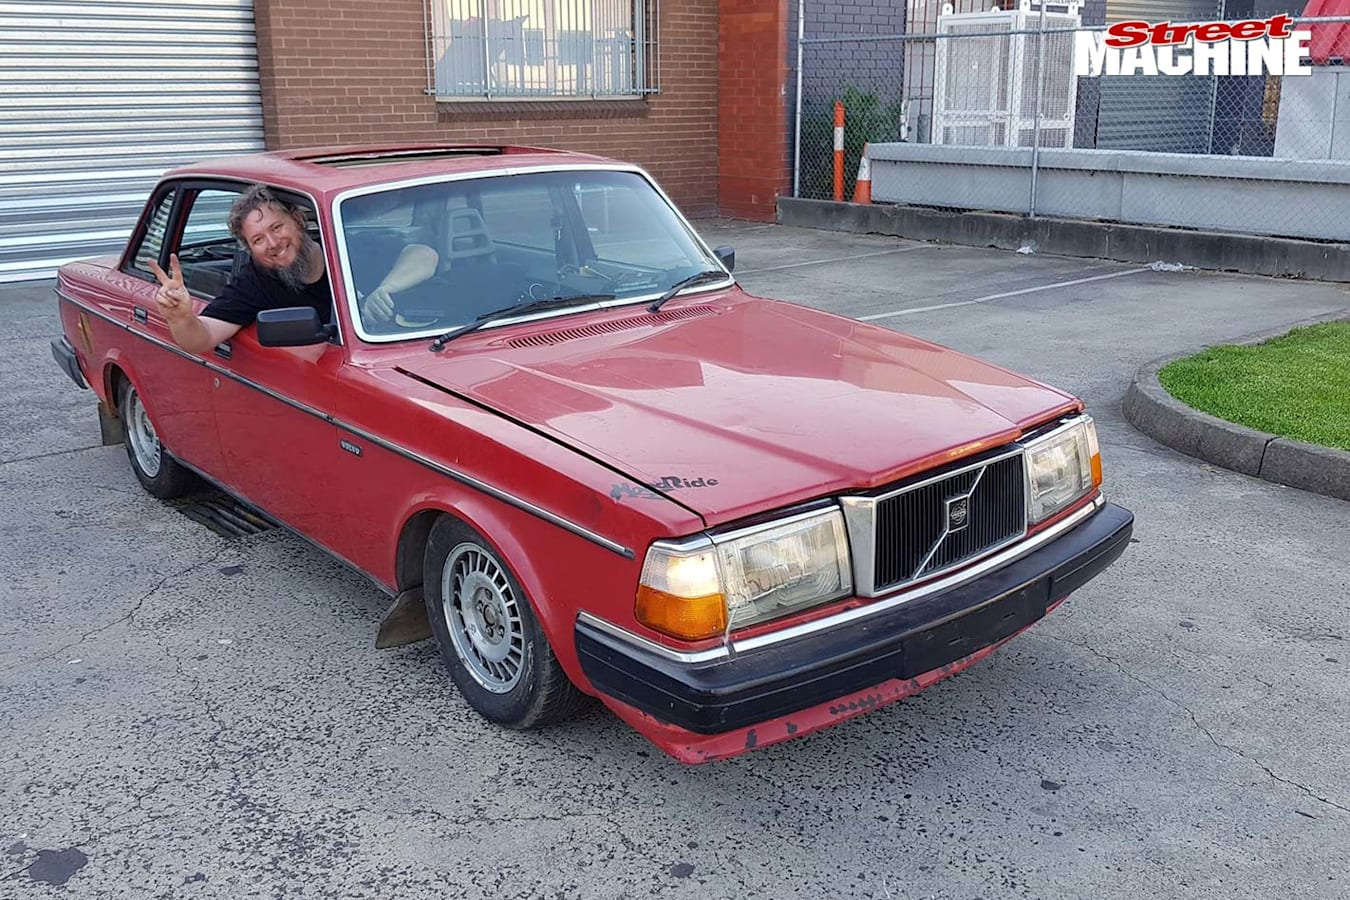 Carnage twin turbo swapped Volvo 240